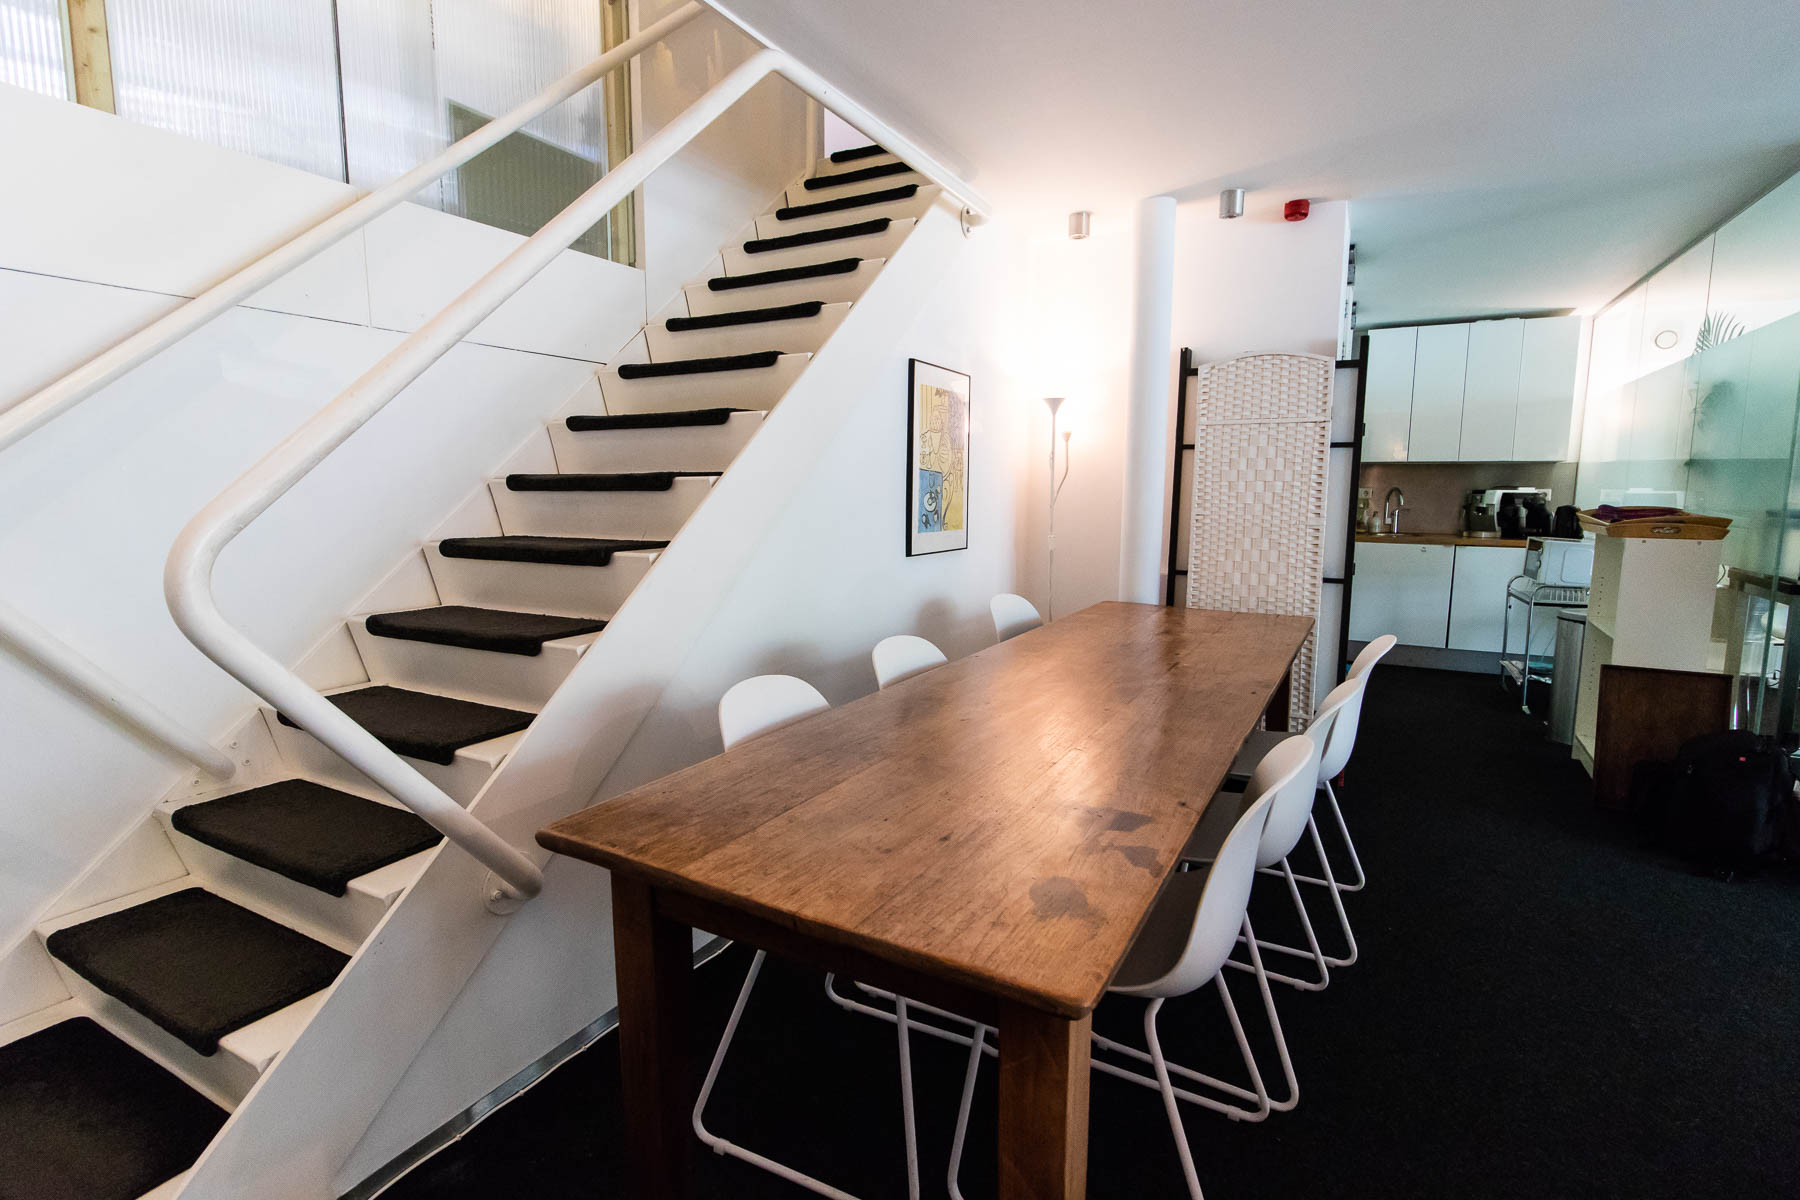 Rent office space Overtoom 47, Amsterdam (29)